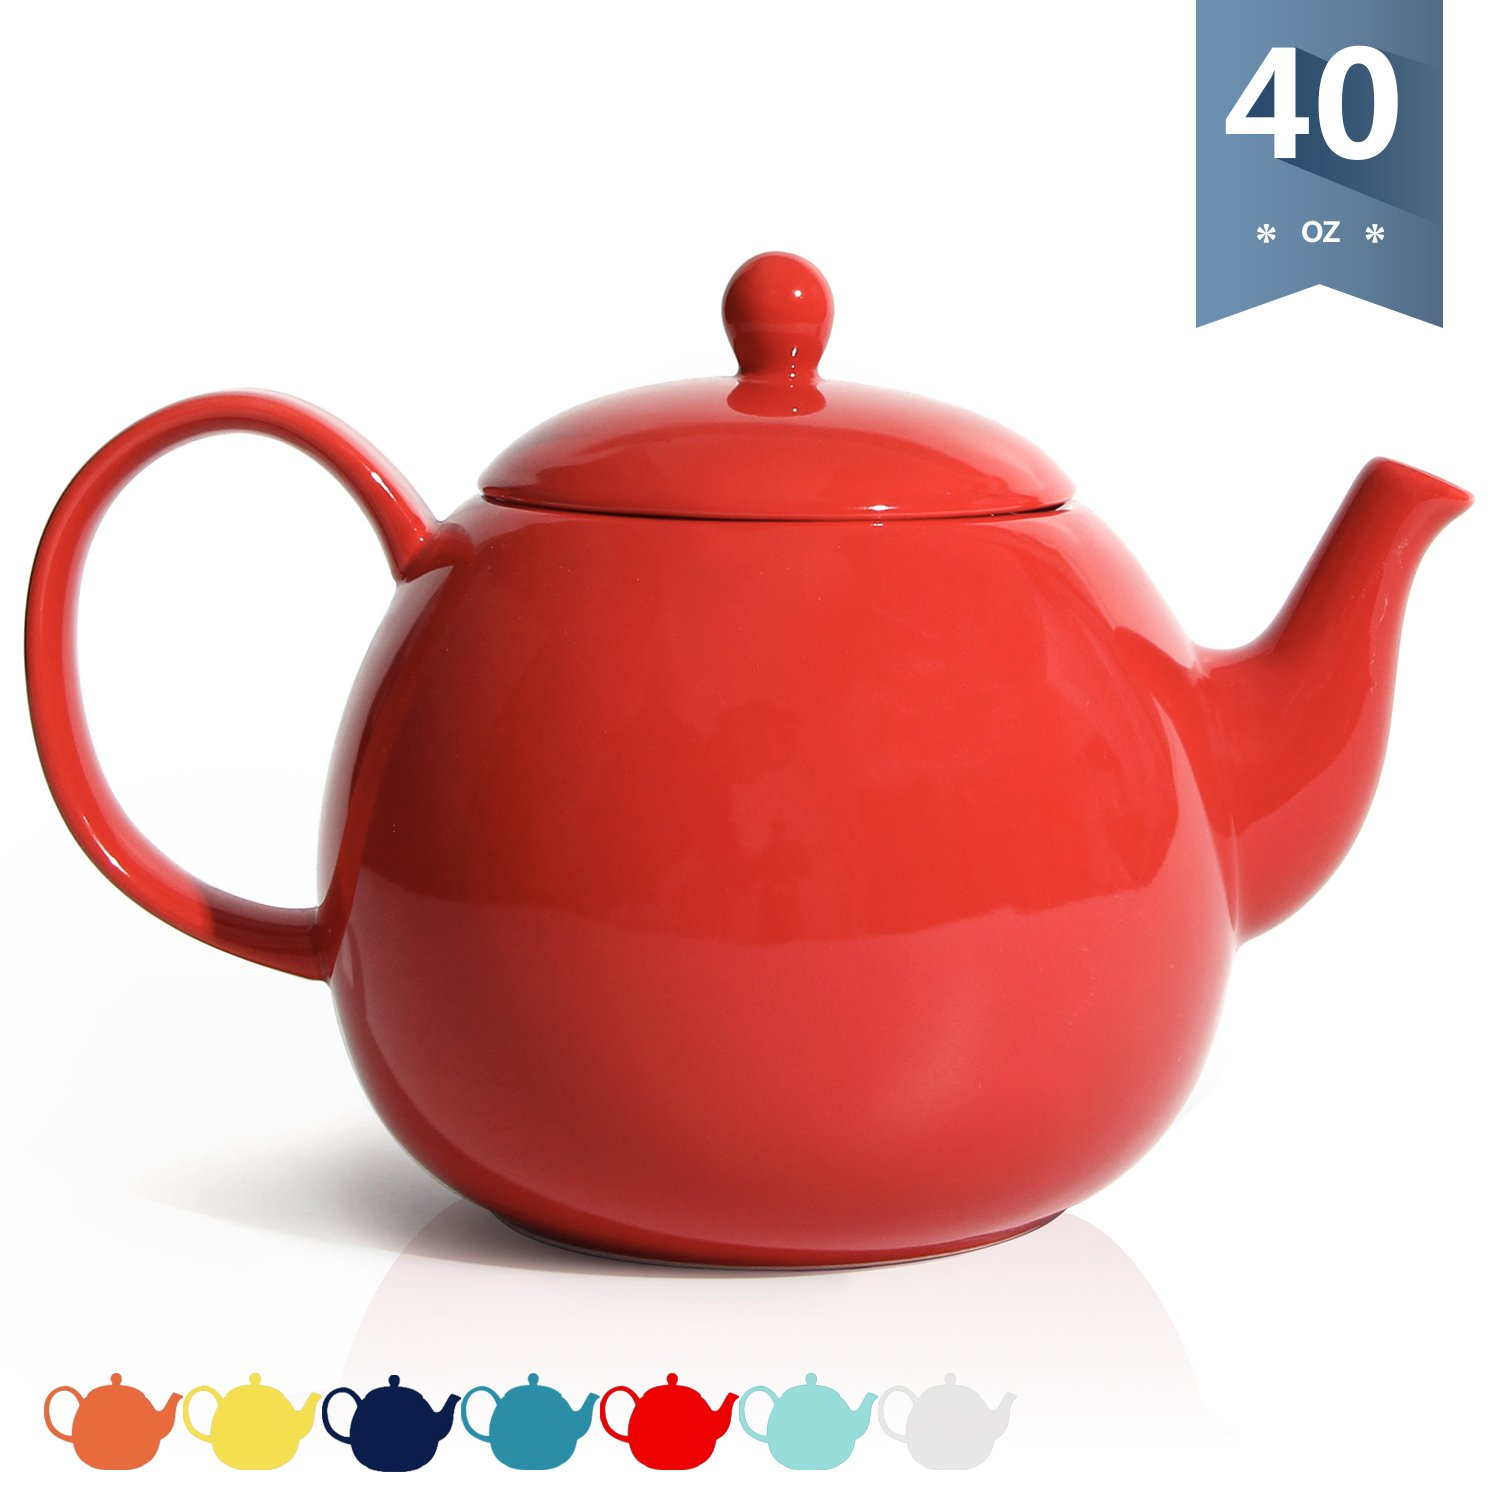 Sweese 2313 Porcelain Teapot, 40 Ounce Tea Pot - Large Enough for 5 Cups, Navy